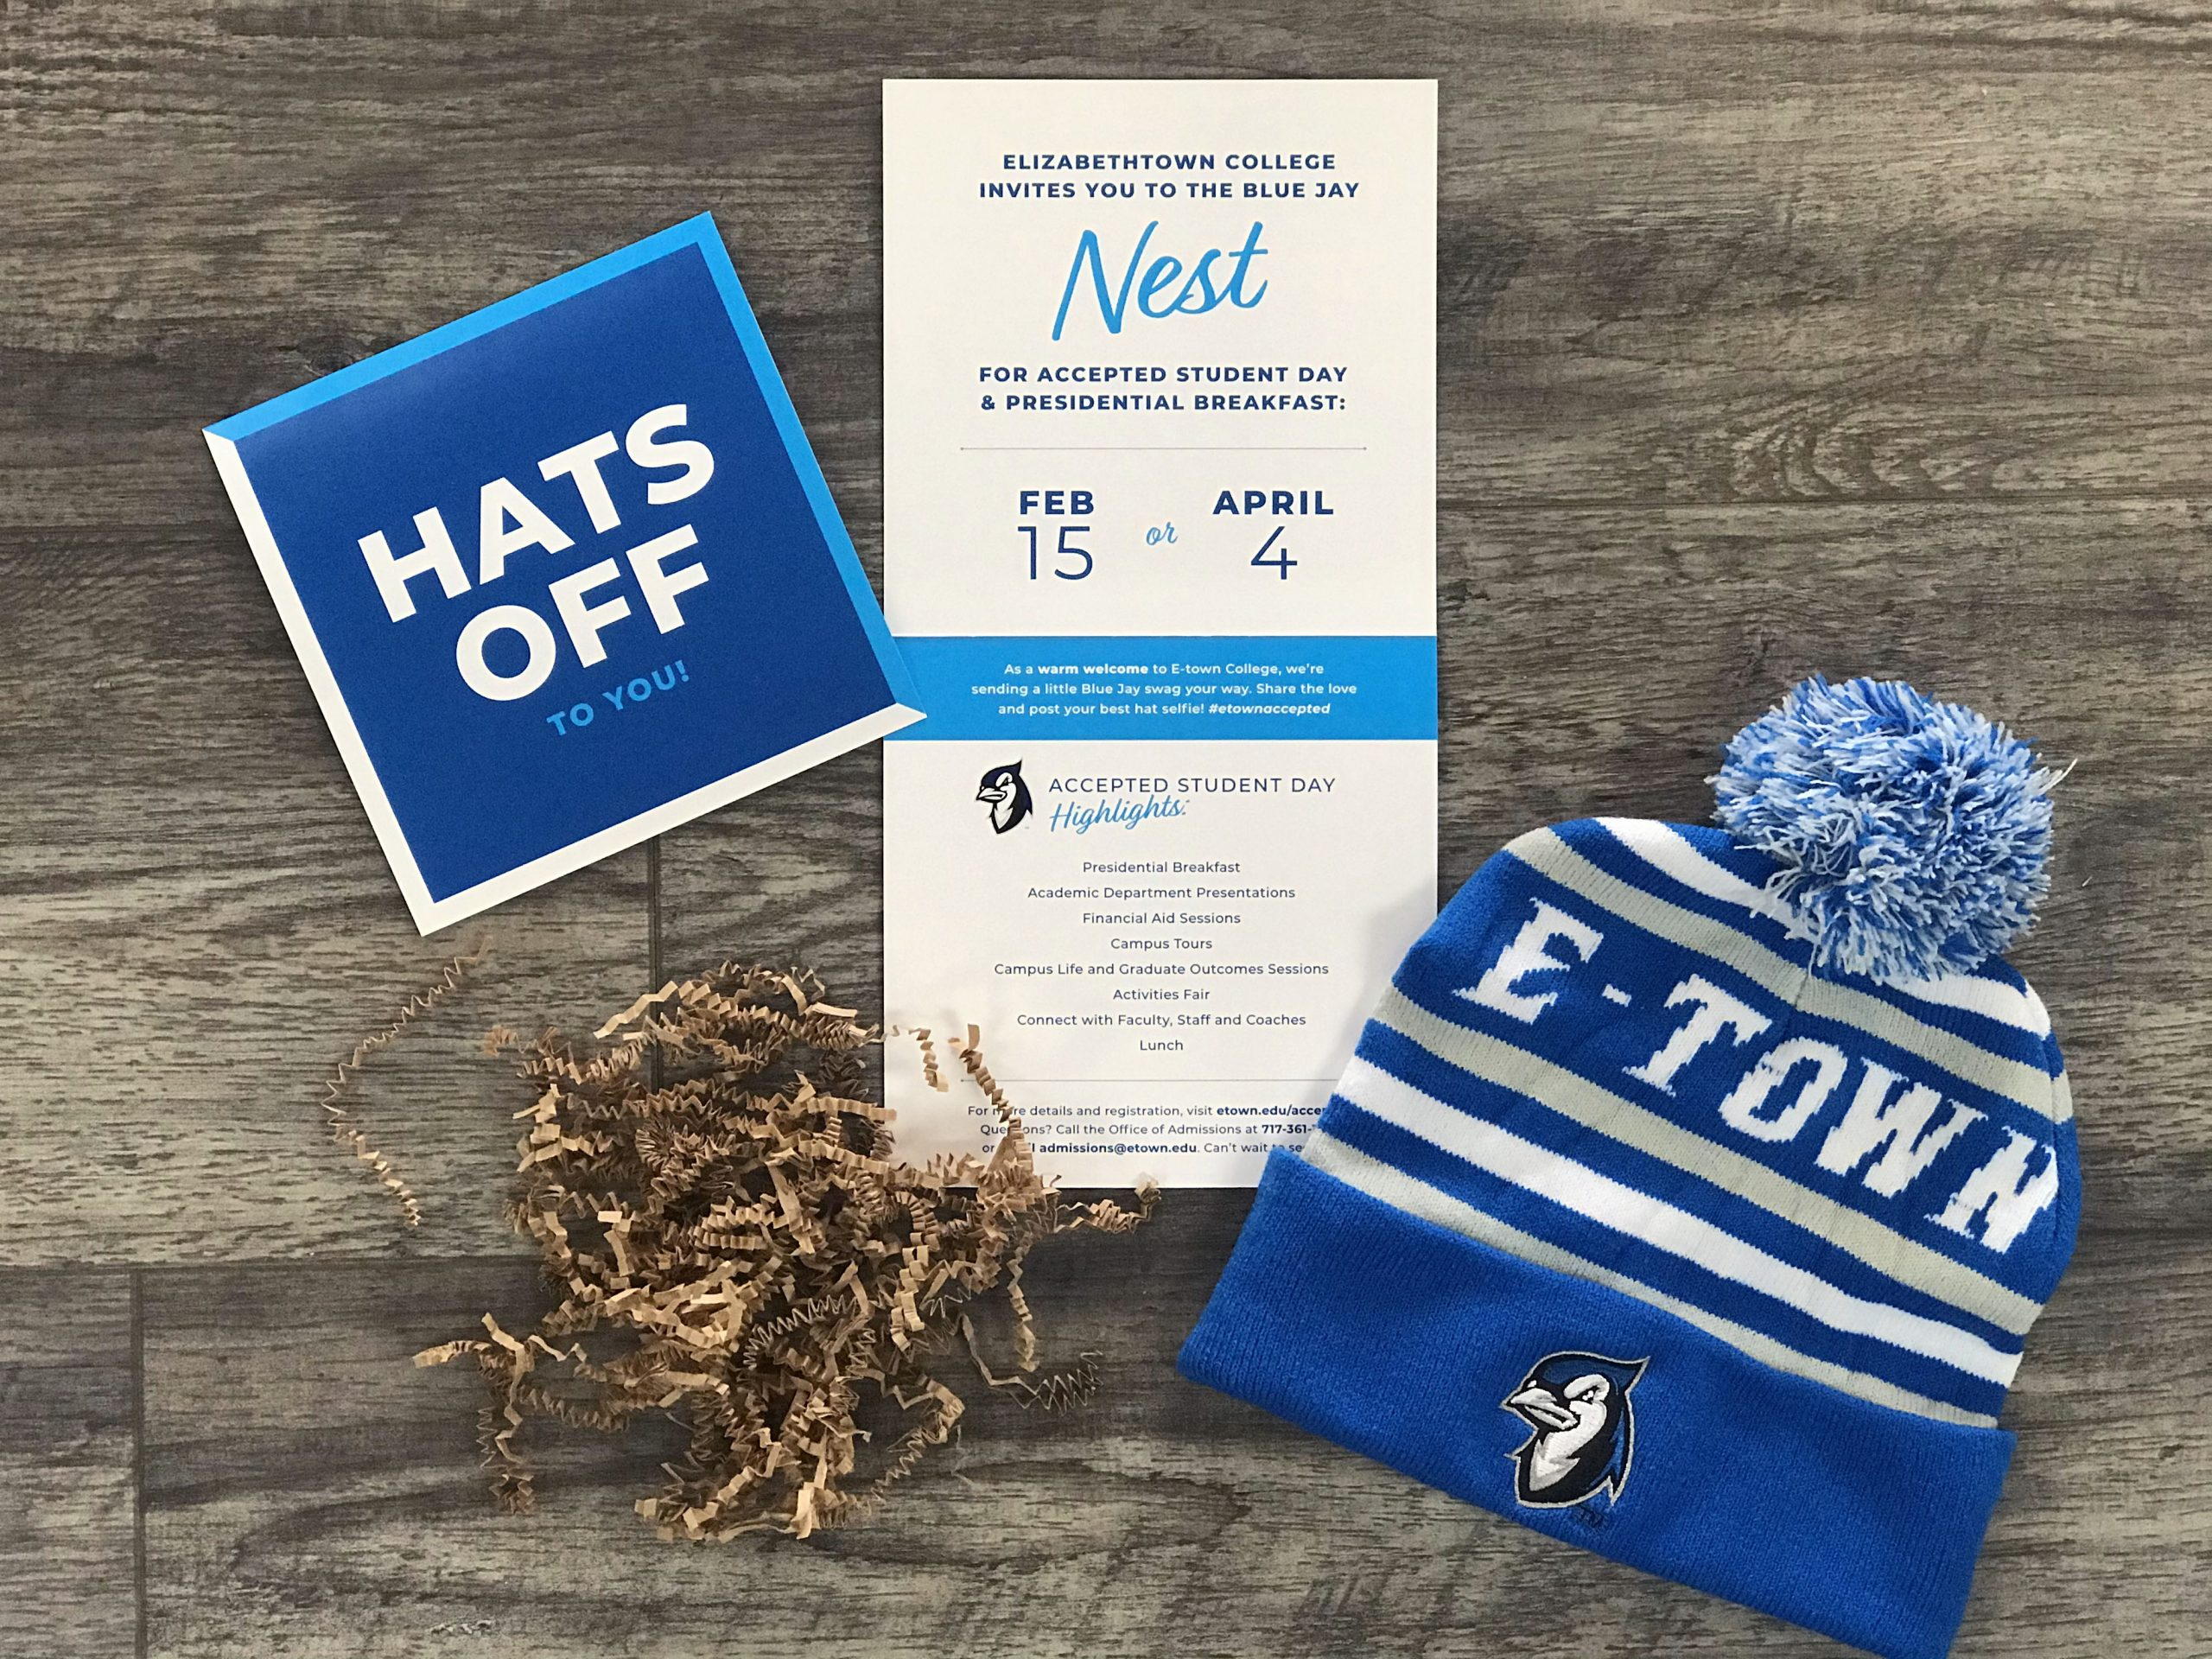 Elizabethtown College admissions box kit contents including